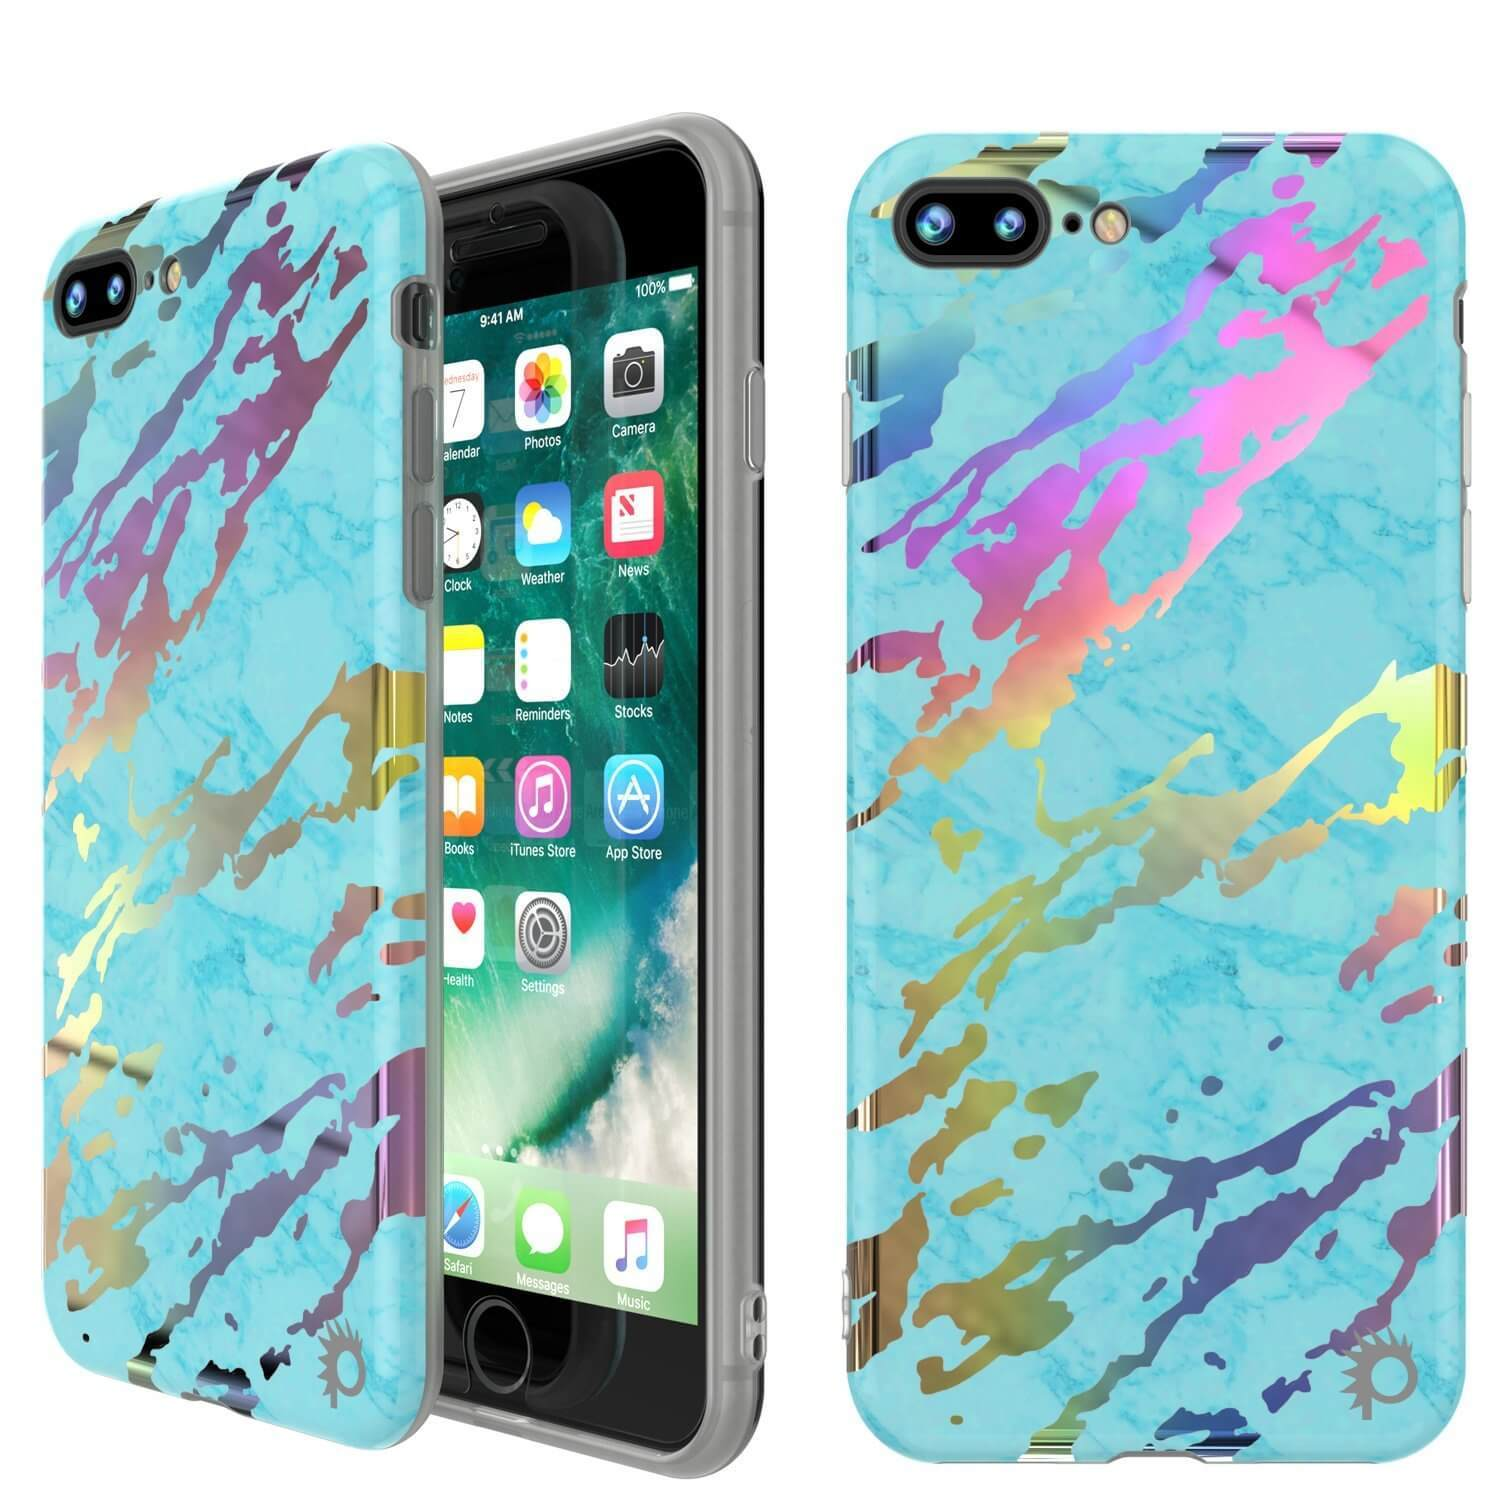 Punkcase iPhone 8+ / 7+ Plus Marble Case, Protective Full Body Cover W/9H Tempered Glass Screen Protector (Teal Onyx)